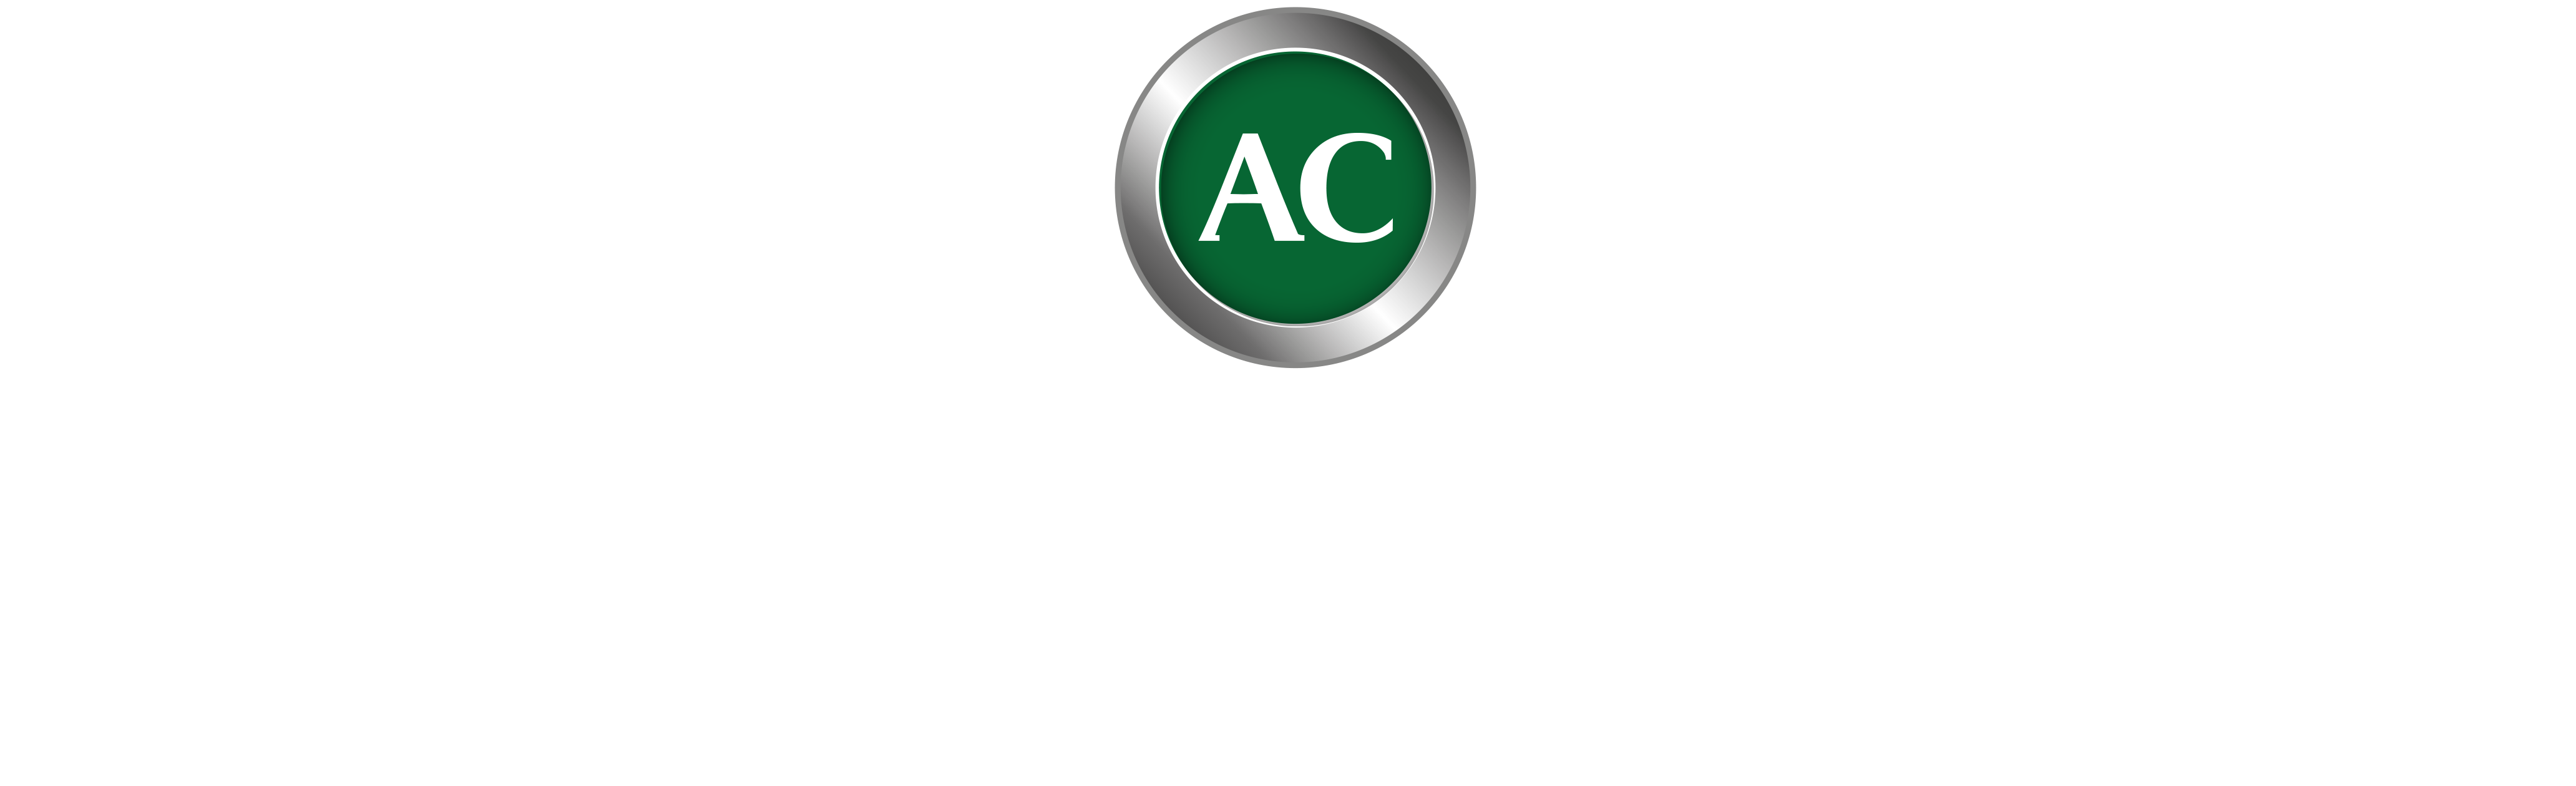 AC Jaguar Services